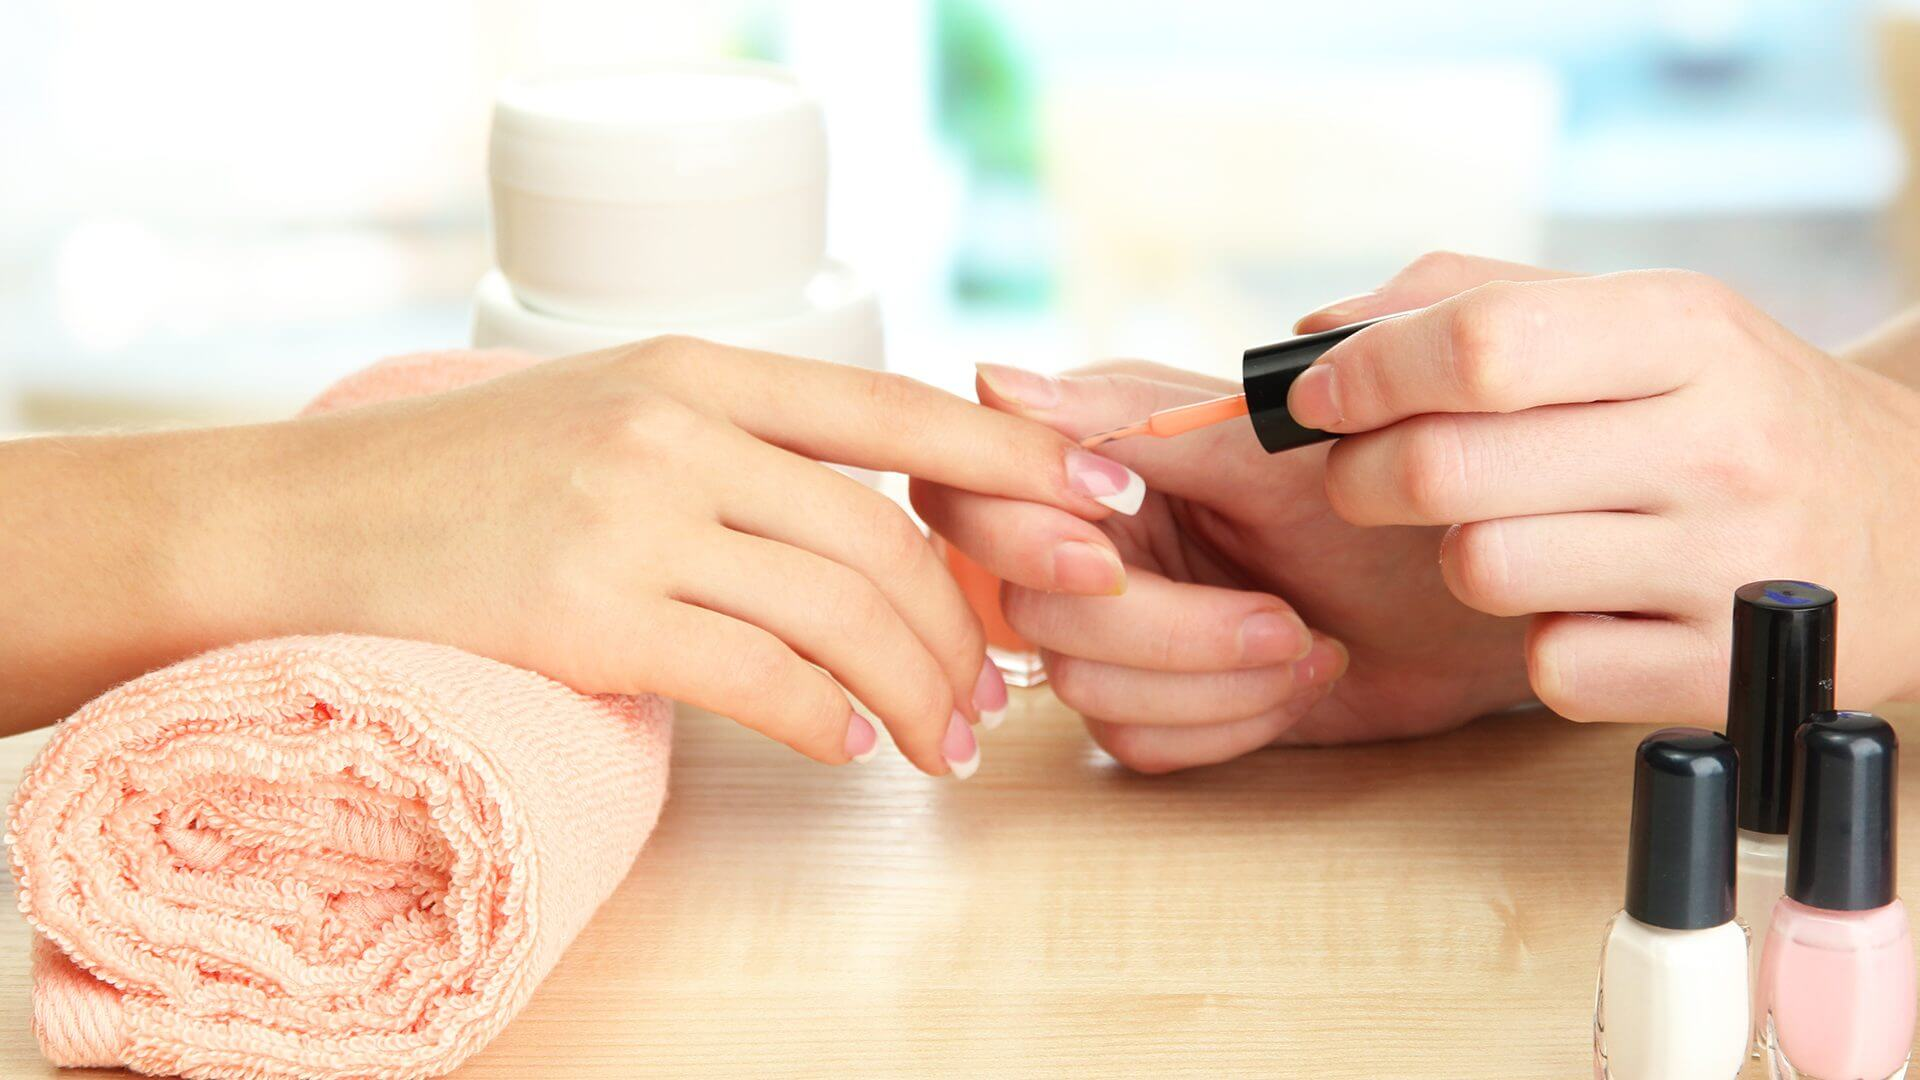 No Remover? Get Rid of Nail Polish This Way!